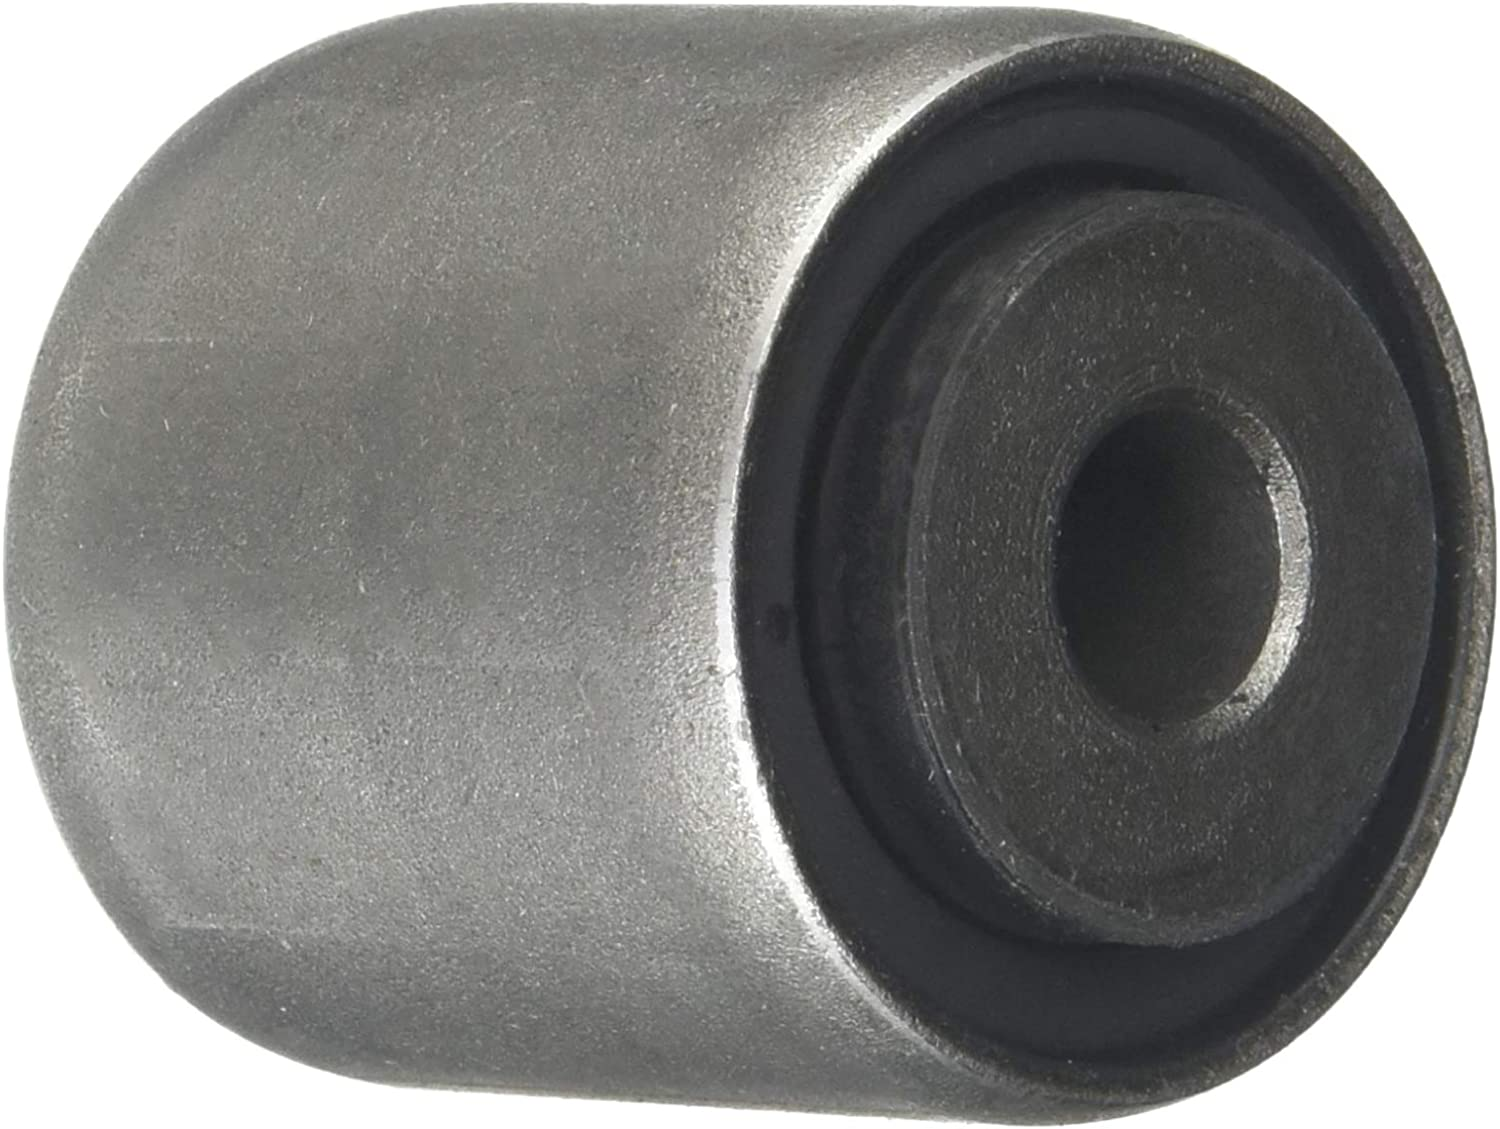 MOOG Chassis Products Moog K201570 Control Arm Bushing